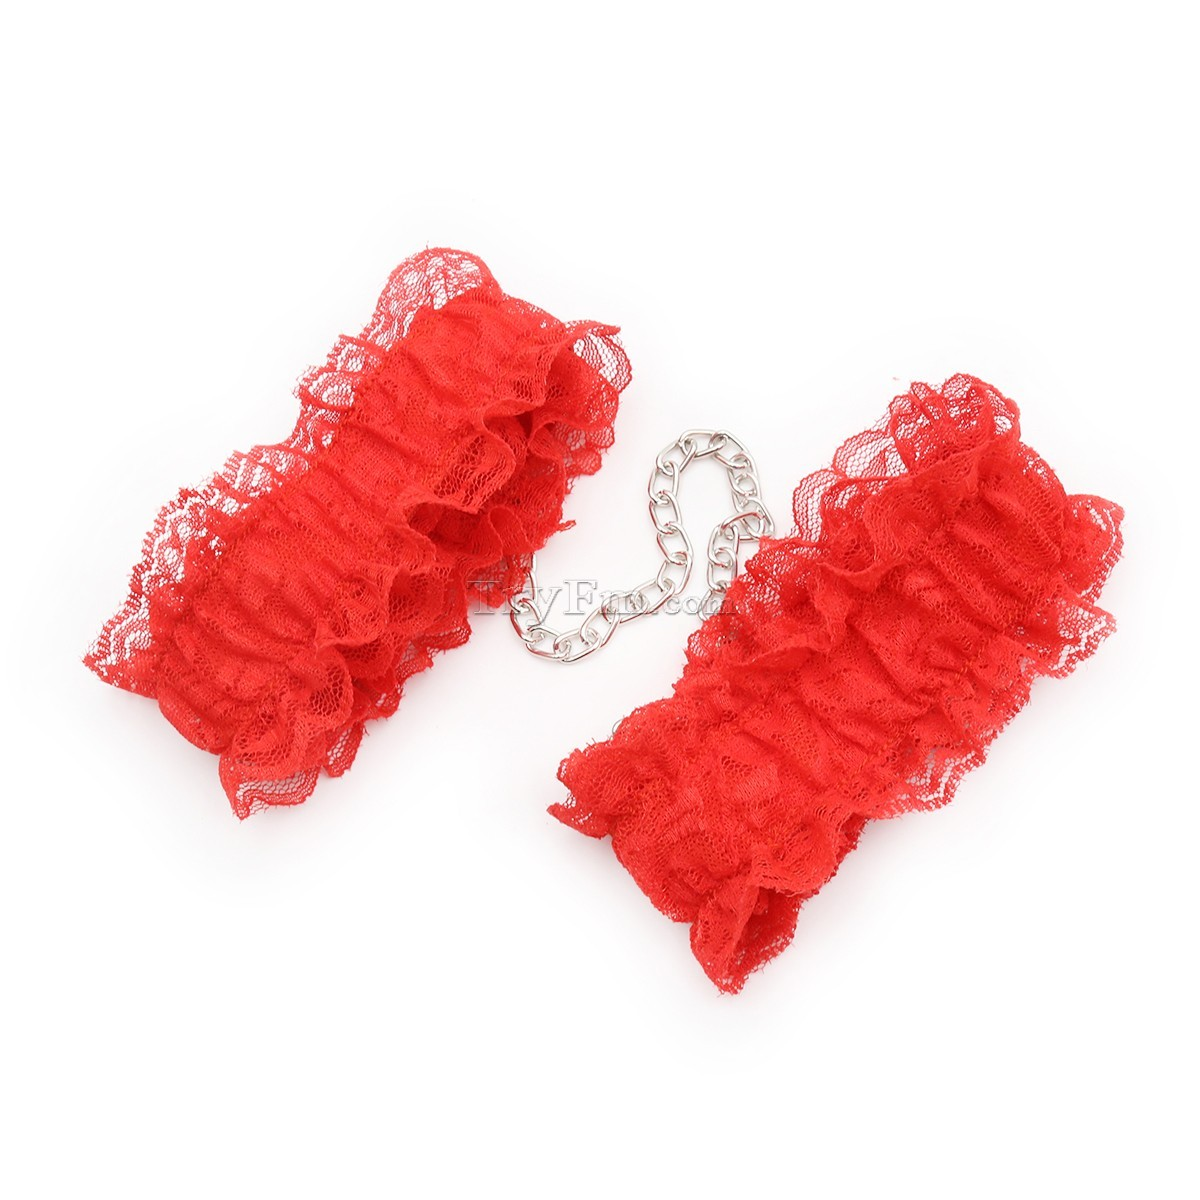 5-Red-Lace-Set11.jpg